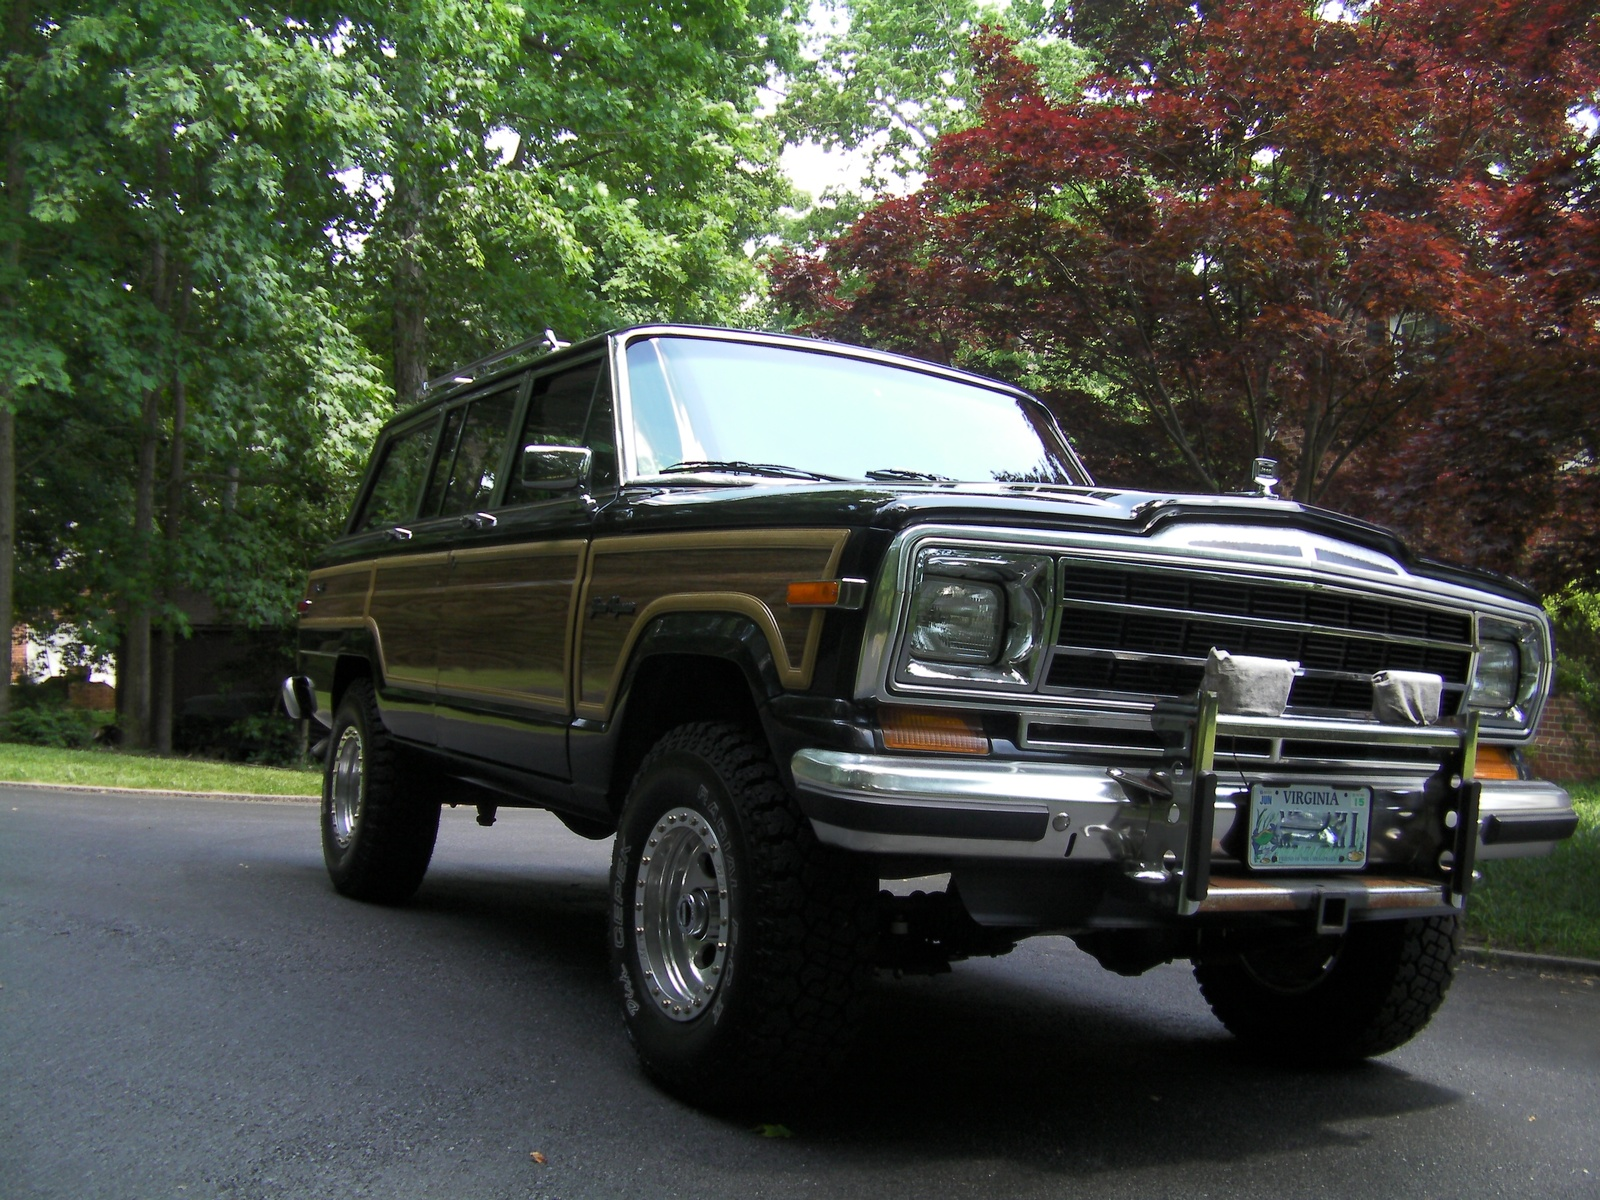 grand wagoneer 2014 jeep wagoneer price pictures to pin on pinterest. Cars Review. Best American Auto & Cars Review